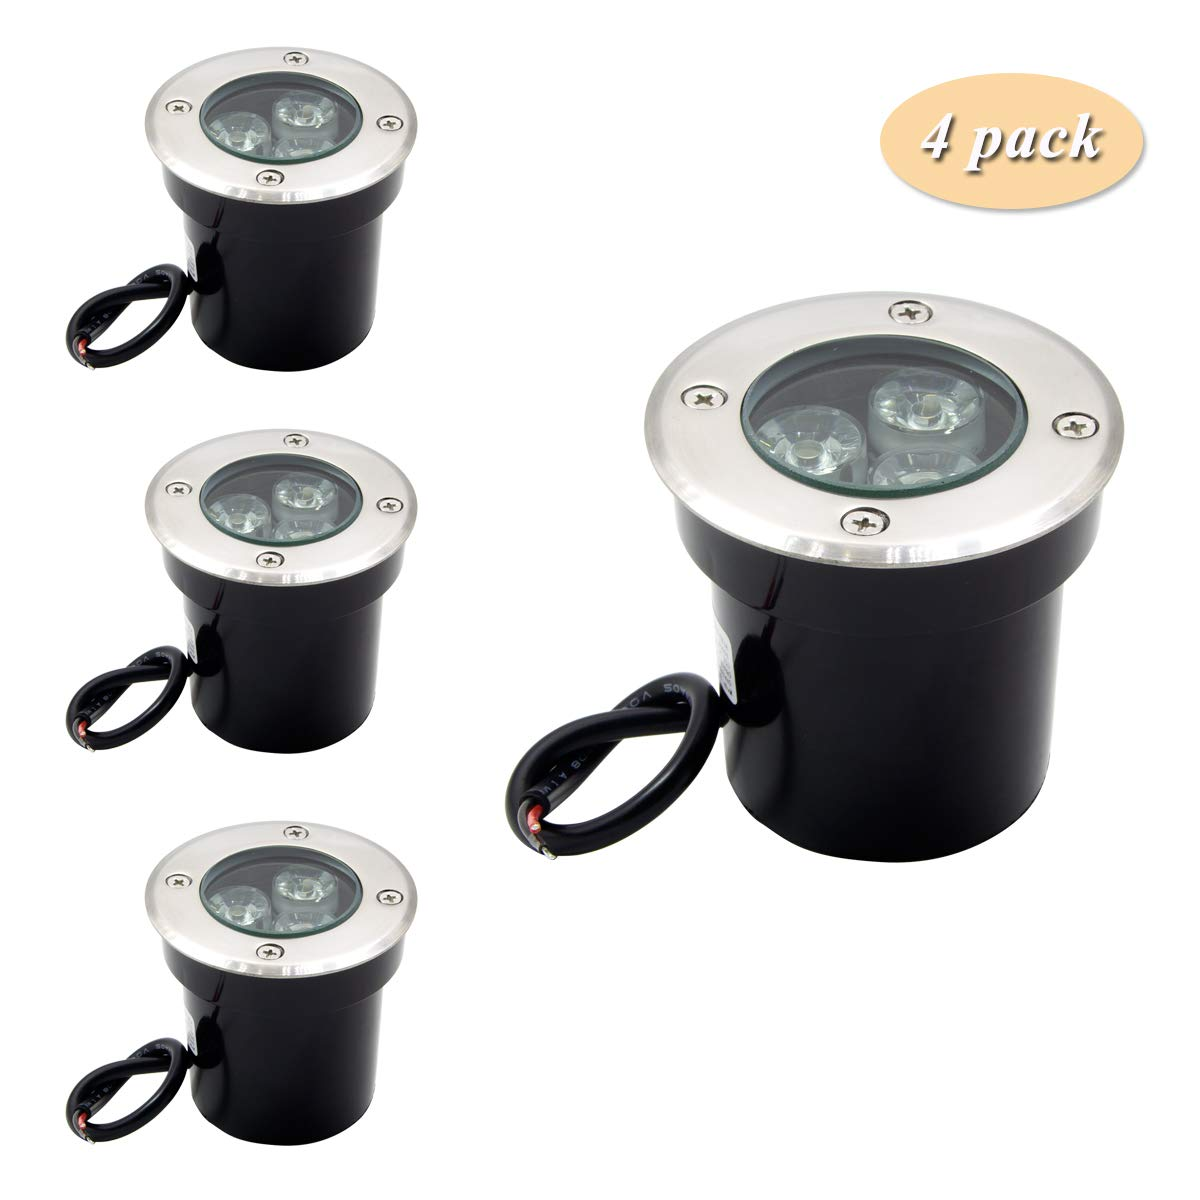 ALEDECO 4 Pack 3w 12v Low Voltage In-ground Lights LED Landscape Lighting Waterproof IP67 Pathway Lights Warm White Outdoor spotlights Trees Flags for Garden,Yard,Tree by ALEDECO